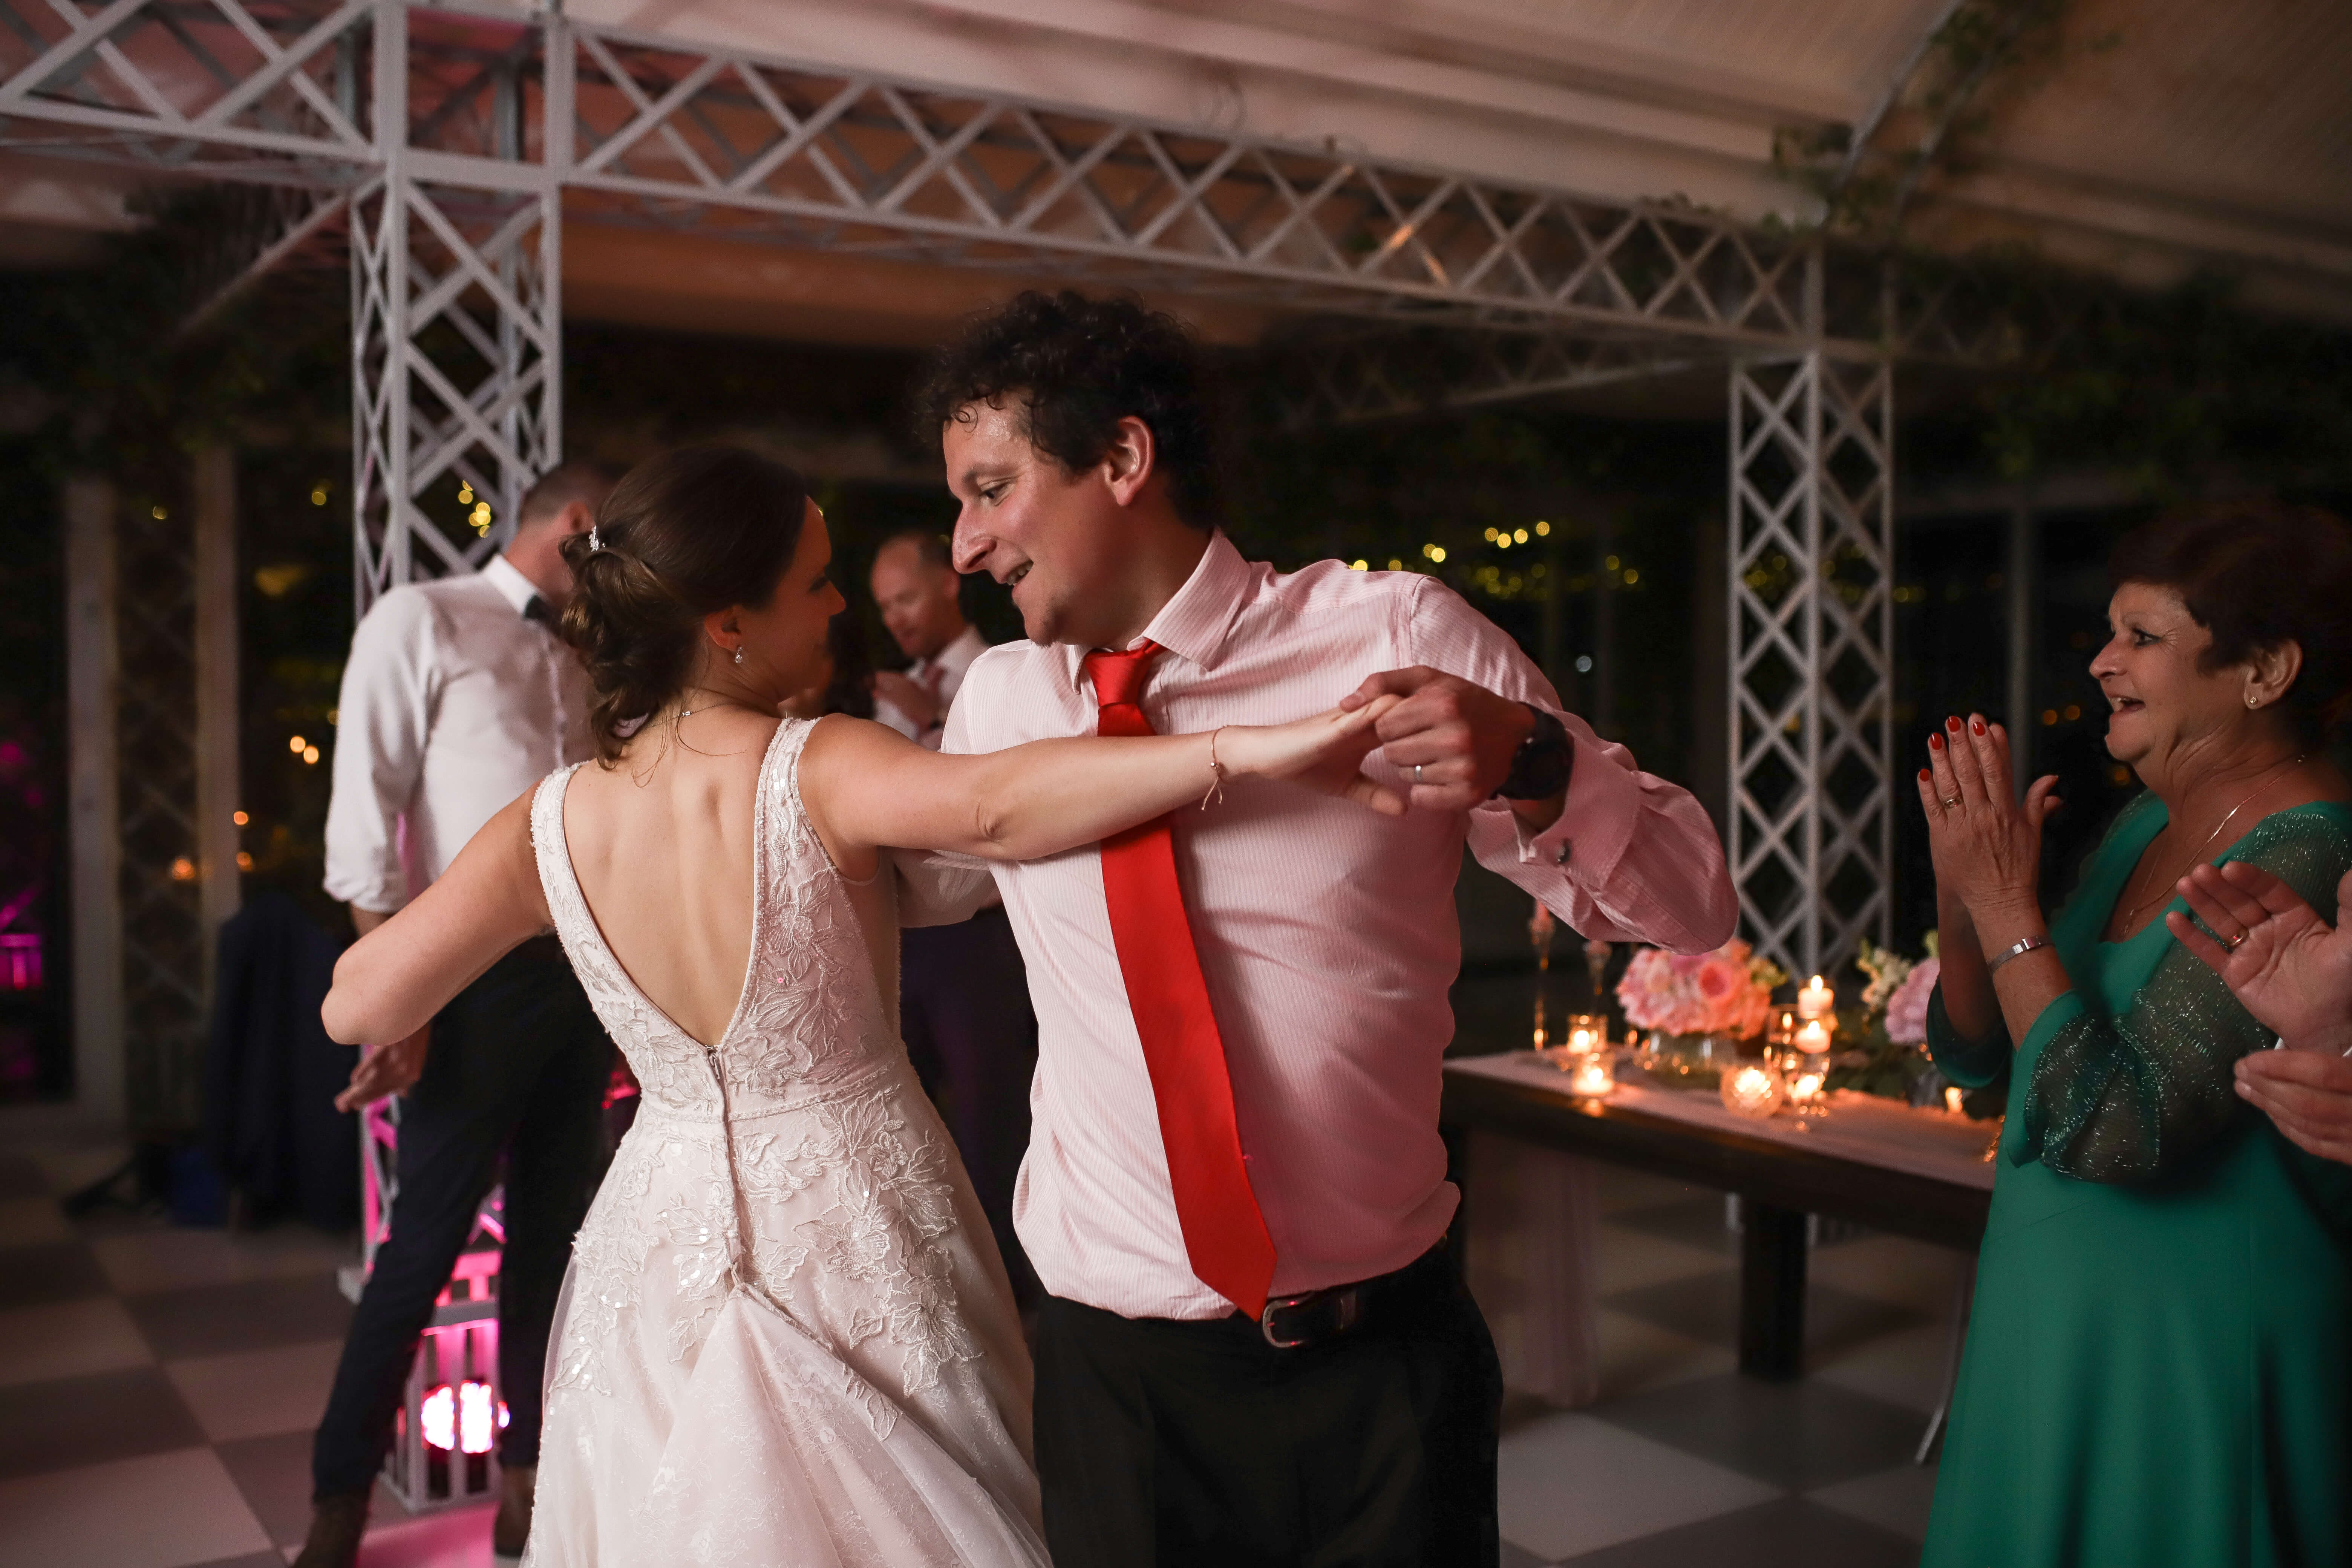 A bride and her friend dancing and swaying on her wedding night.